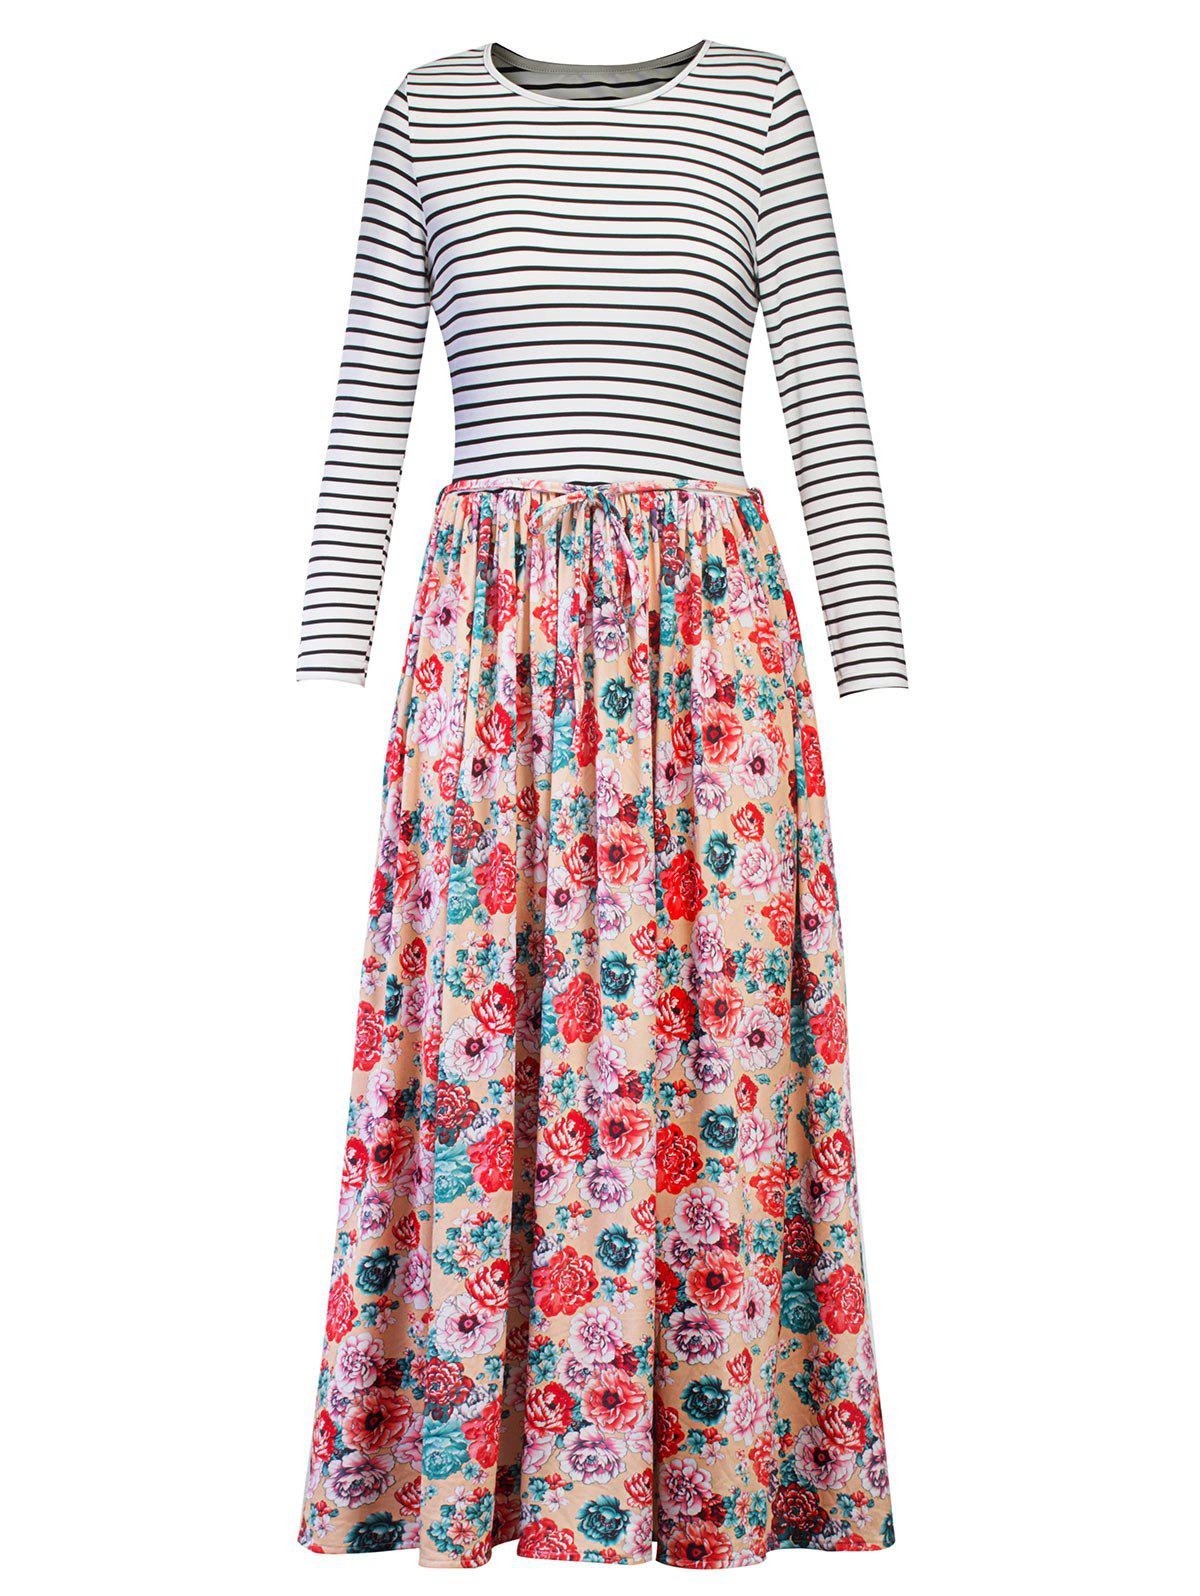 Floral Print Striped Maxi Dress - FLORAL M